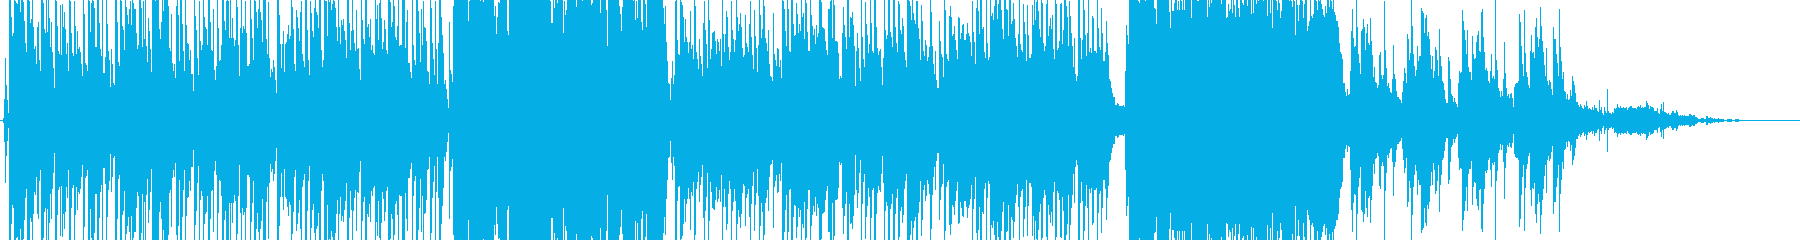 Fairytale song by female lolita voice's reproduced waveform